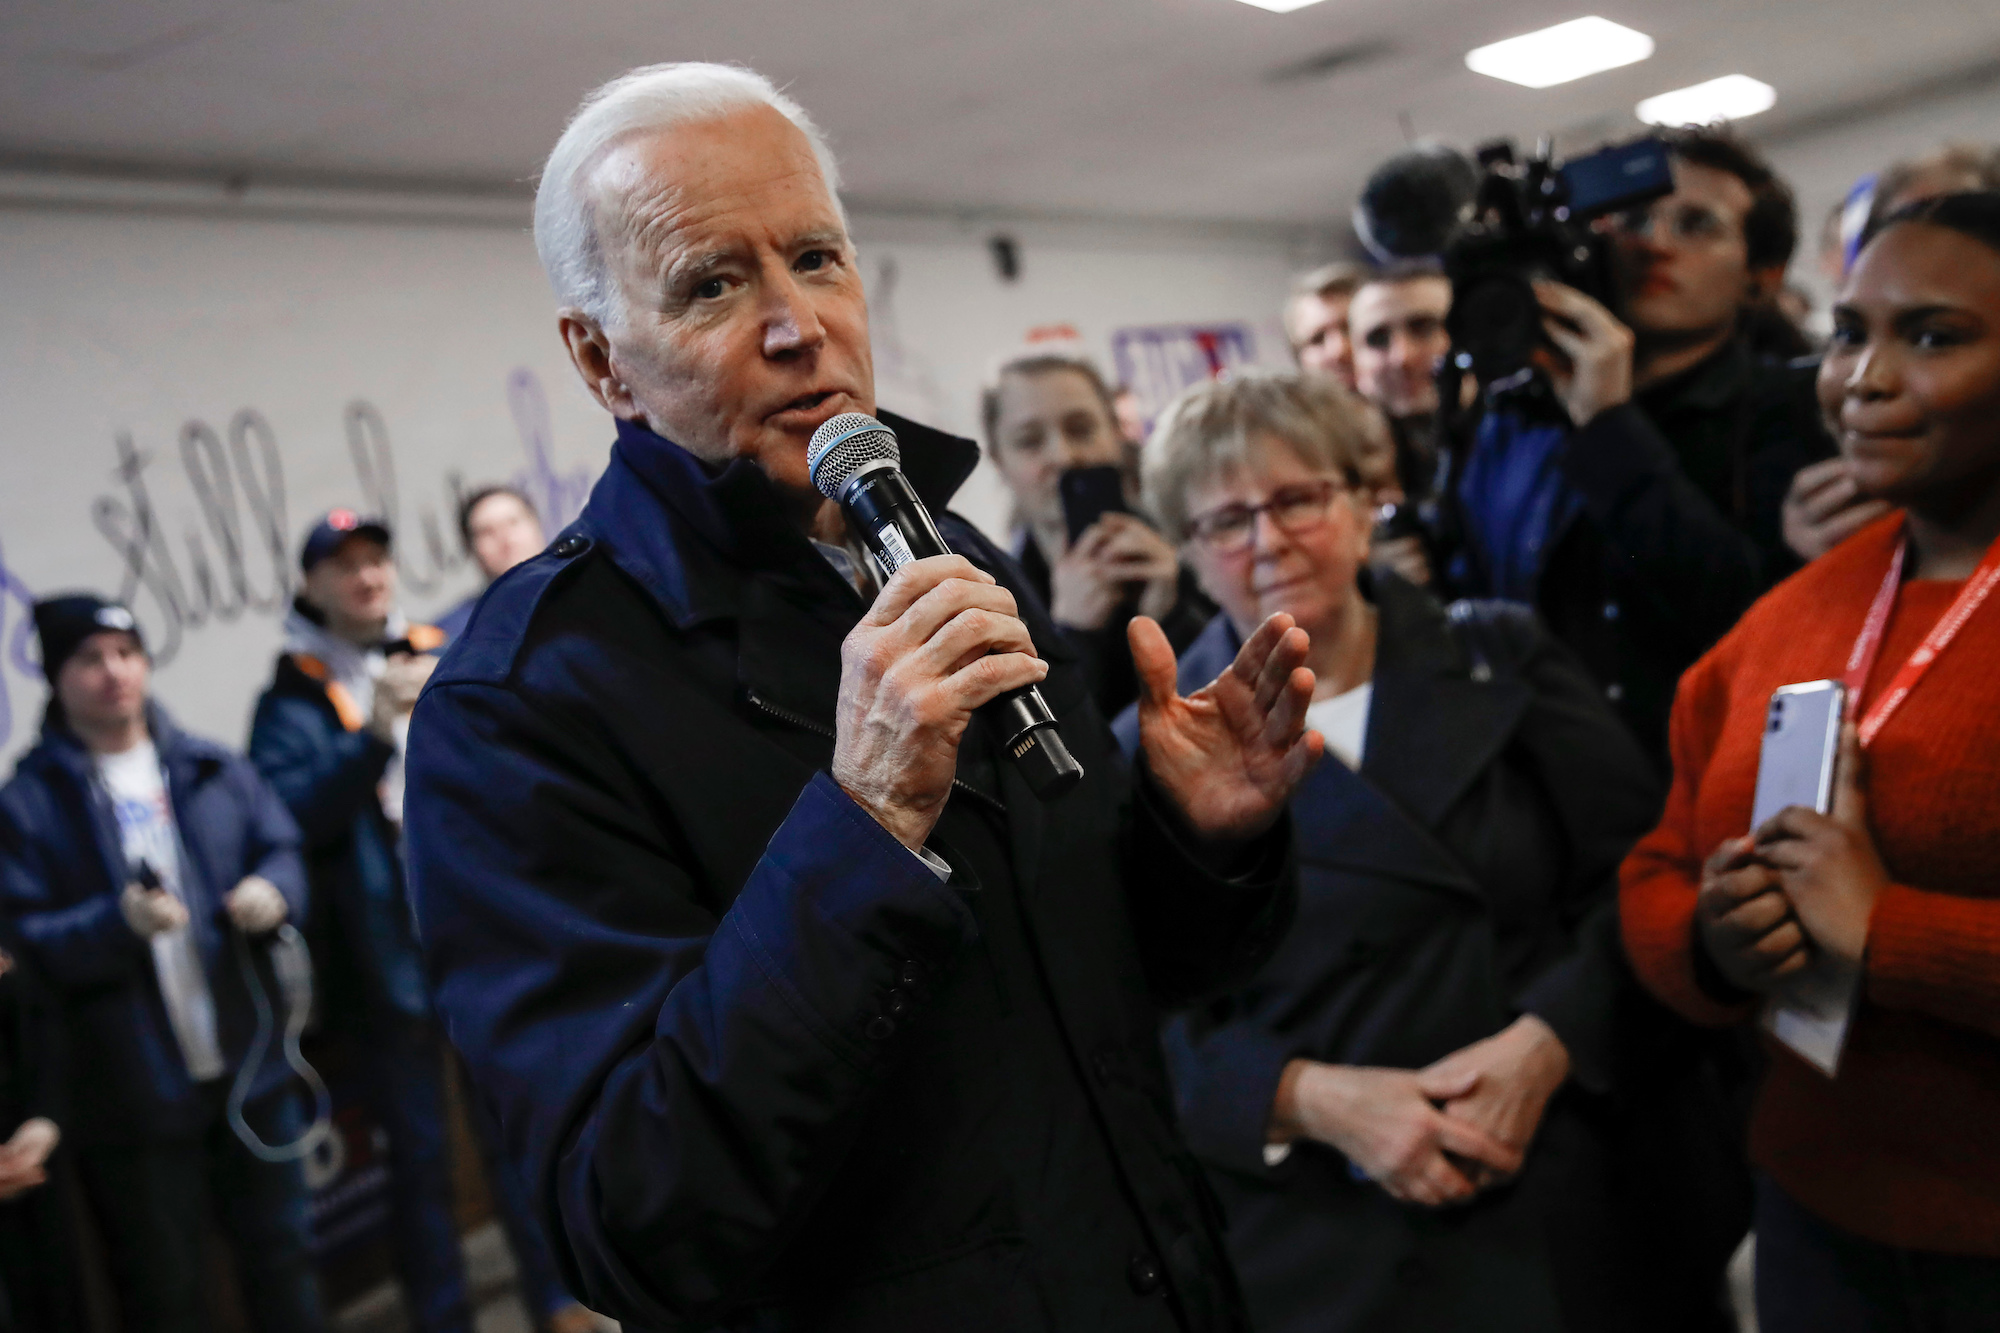 Joe Biden Highlights Mayor Pete's Lack of Experience in Clever New Ad